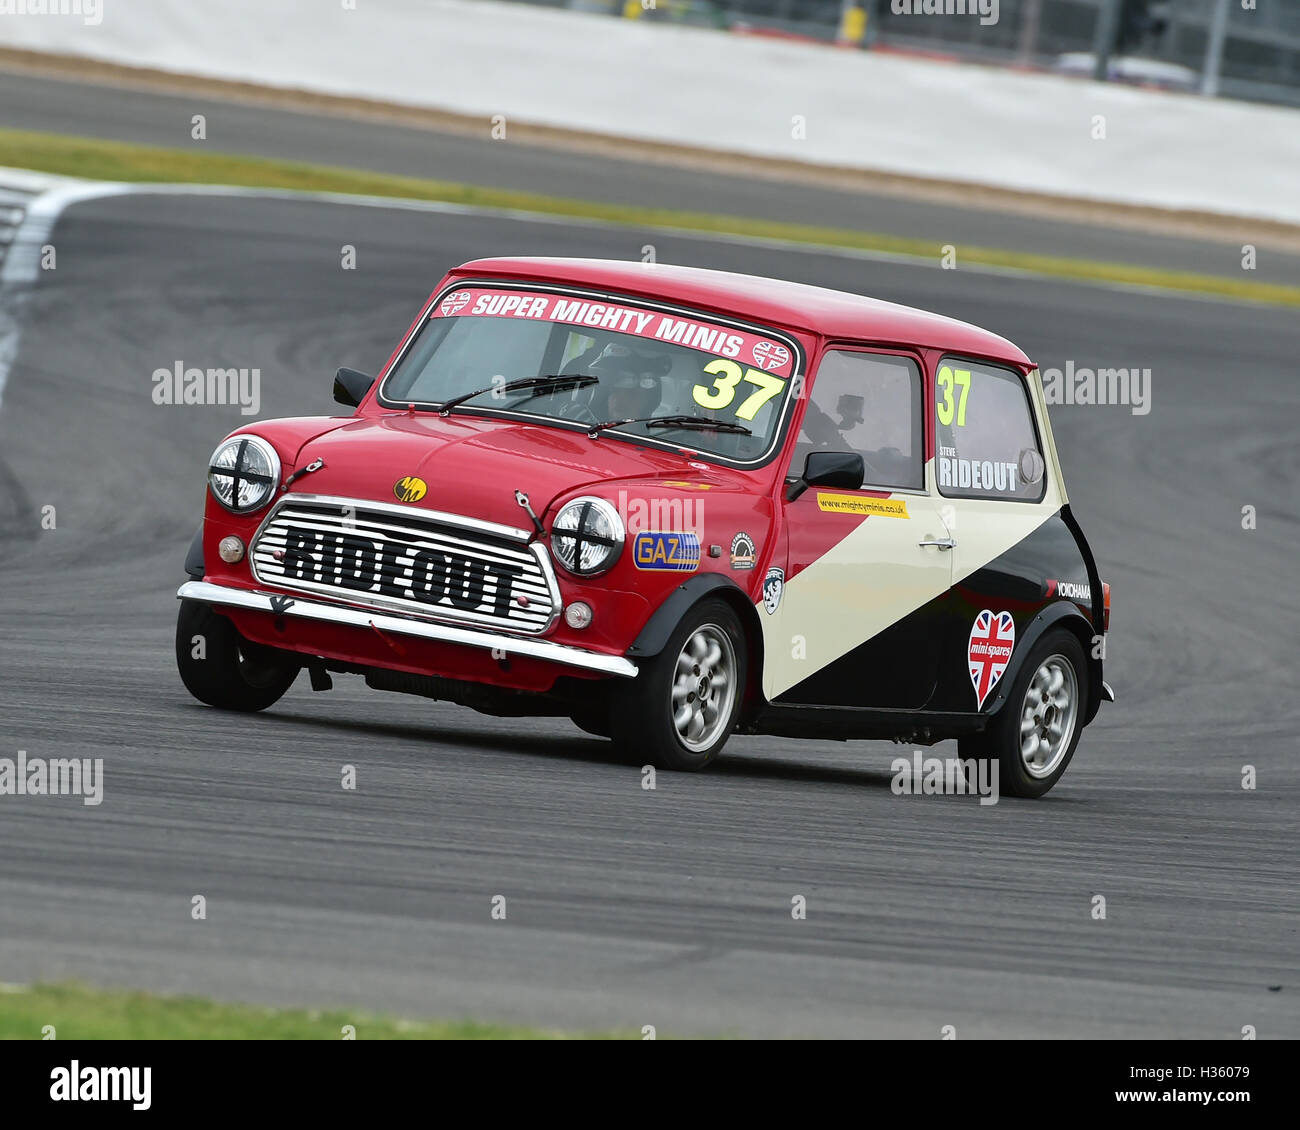 Steven Rideout, Super Mighty Mini, 1293, Mighty Mini Championship, Saturday, Silverstone, Silverstone truck festival, - Stock Image